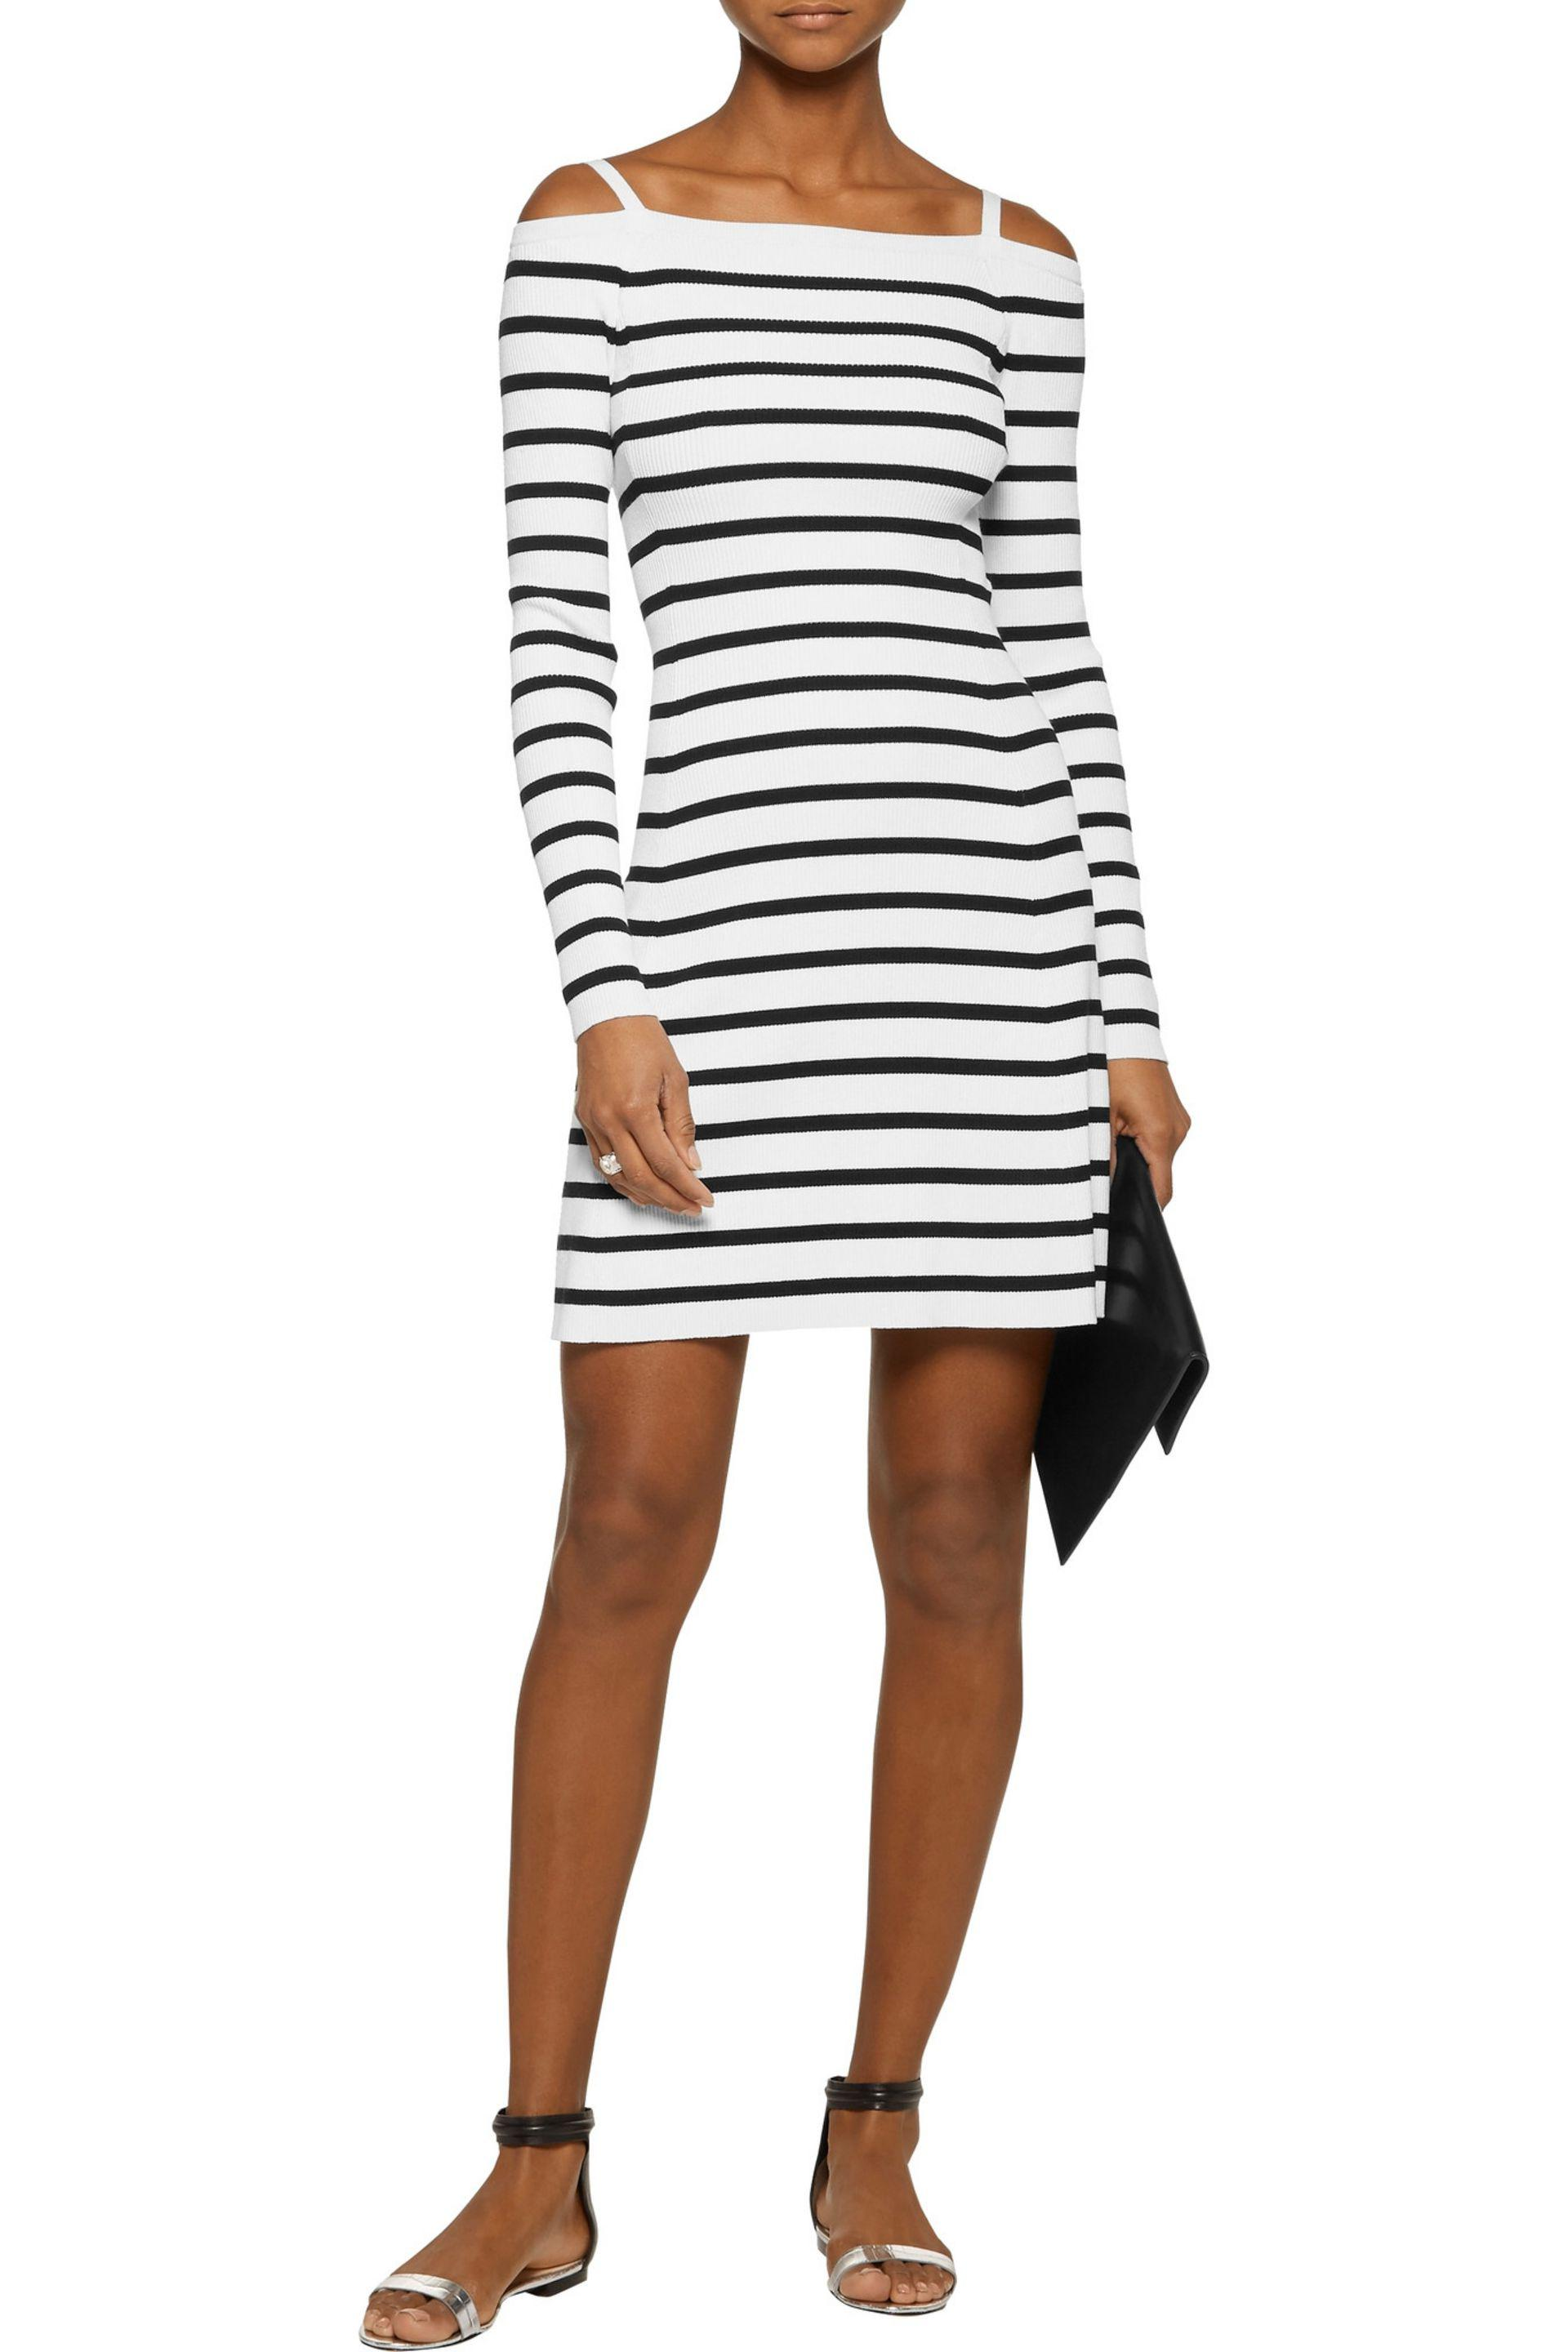 Theory Woman Pirellia Cold-shoulder Striped Ribbed-knit Mini Dress White Size S Theory nnEGHd1zI4